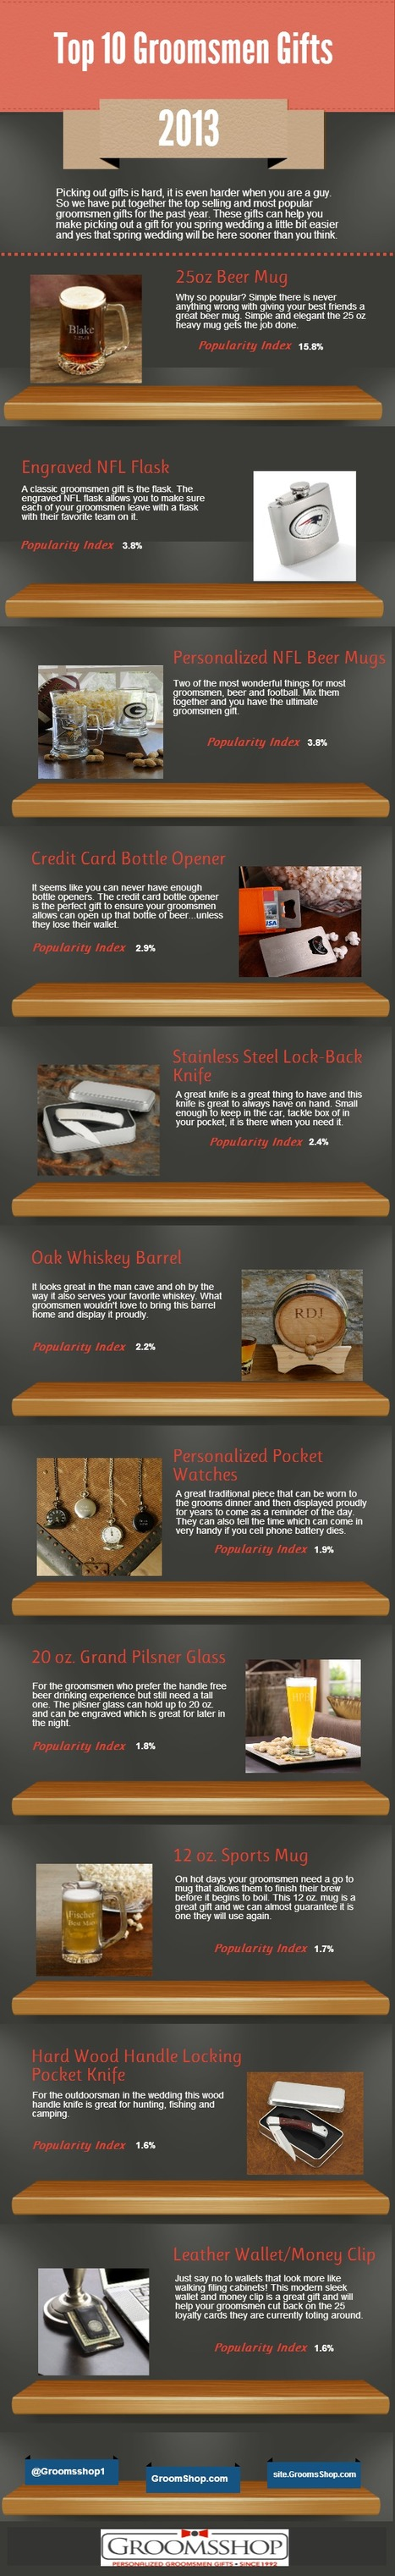 Top Groomsmen Gifts of 2013 - GroomsShop.com Blog | Personalized Gifts | Scoop.it